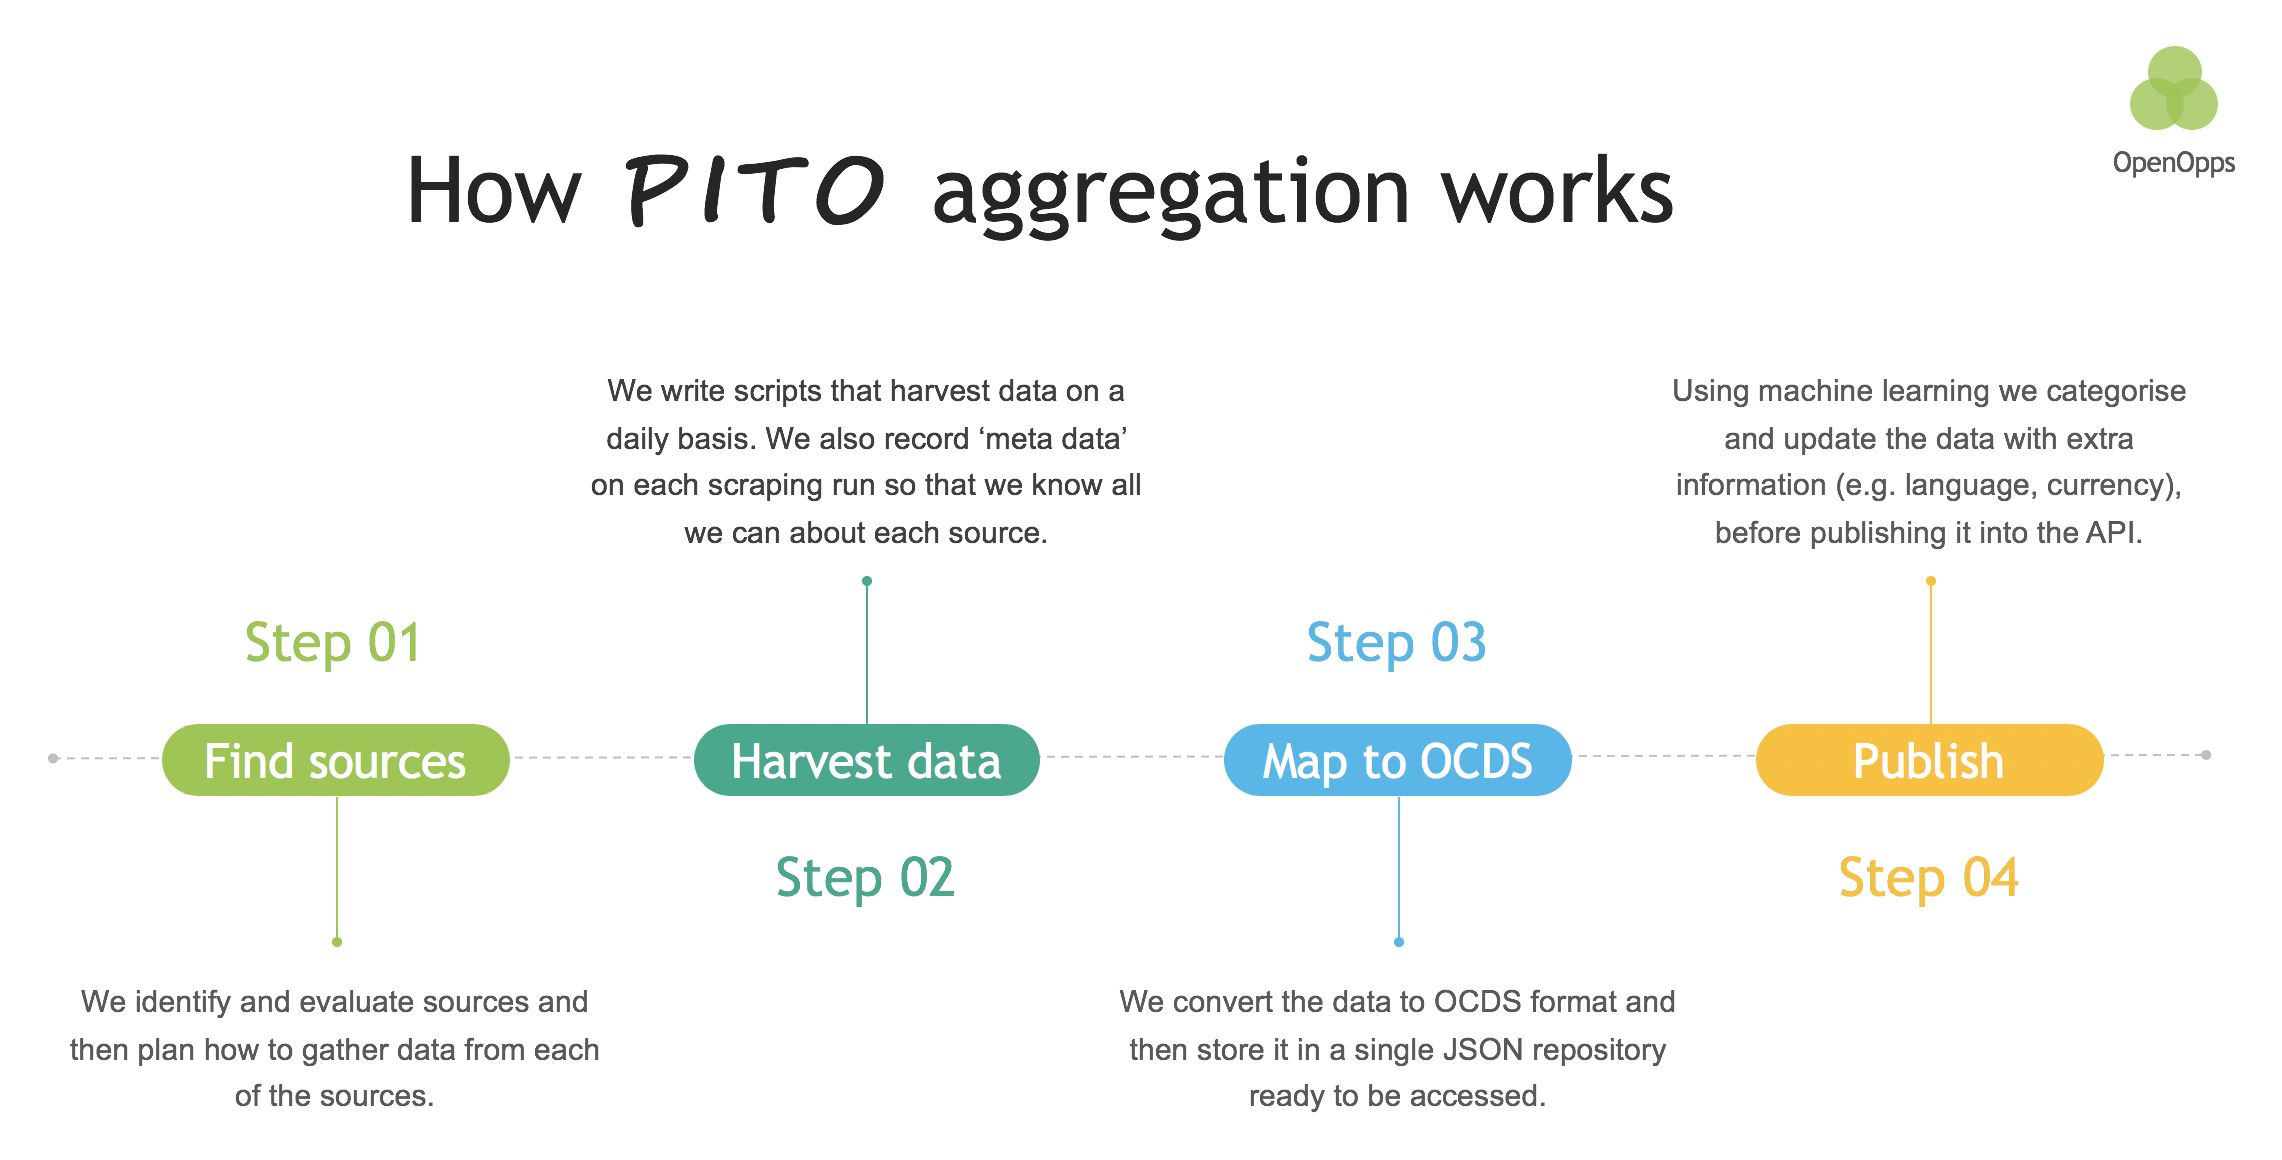 How PITO aggregation works